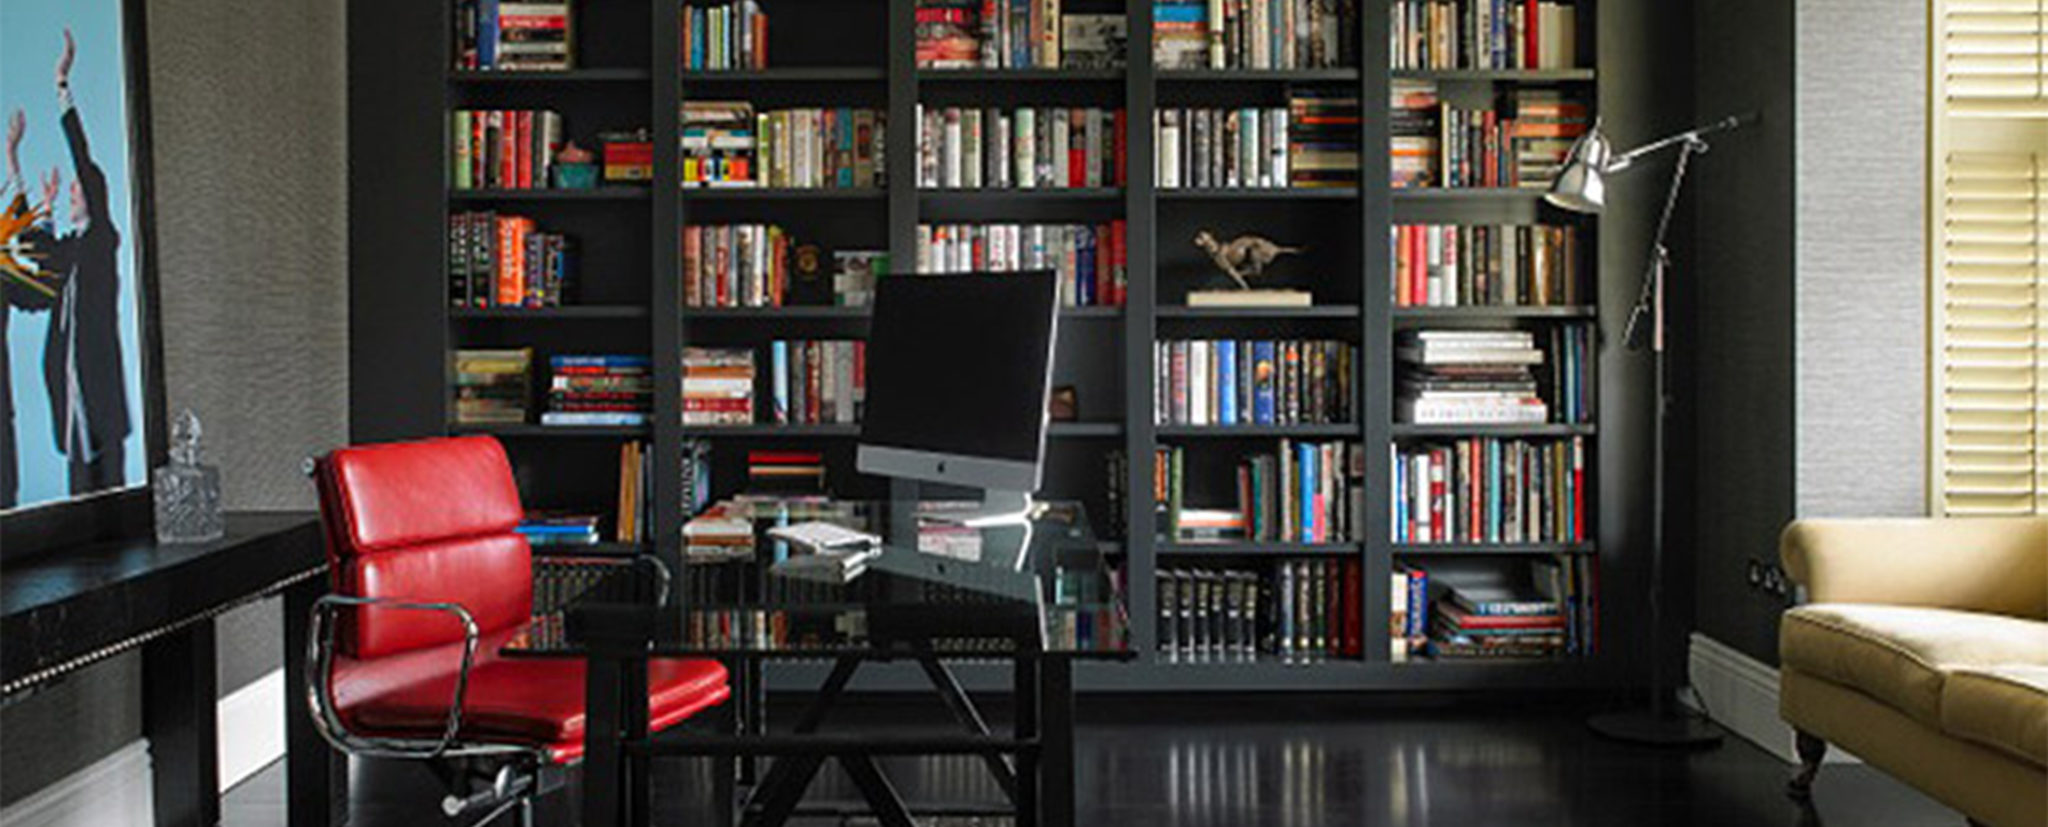 Bespoke Bookcases for Study Room